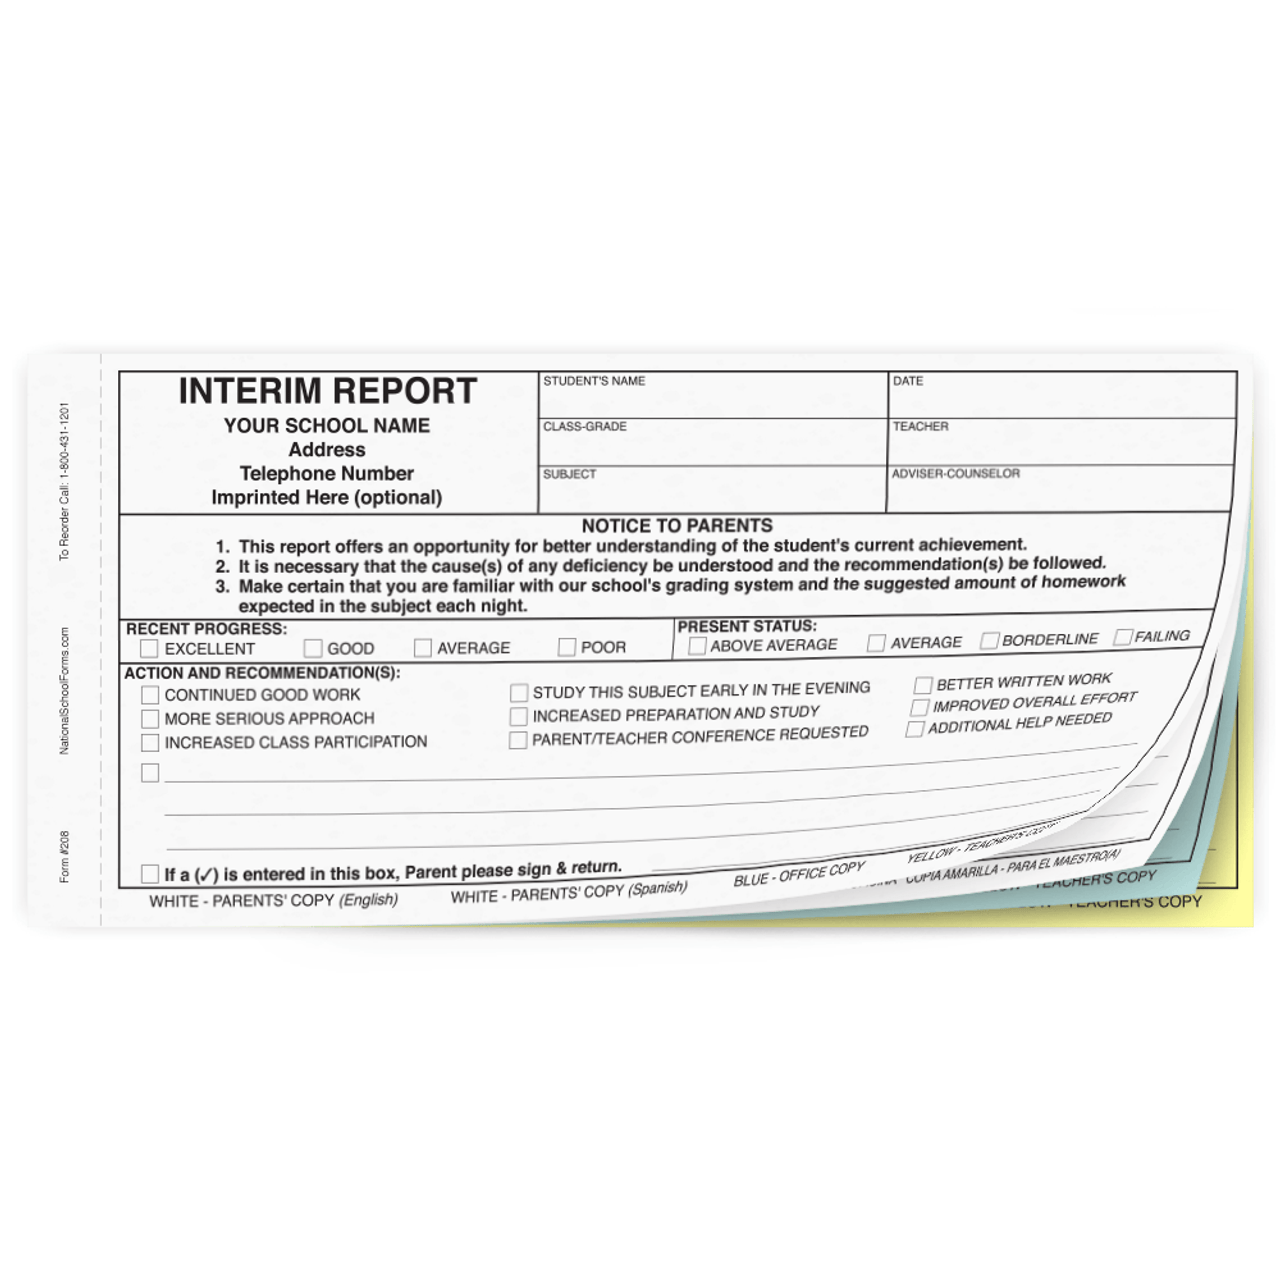 Bilingual Interim Report - 4 part carbonless form with English and Spanish parent copies (208)